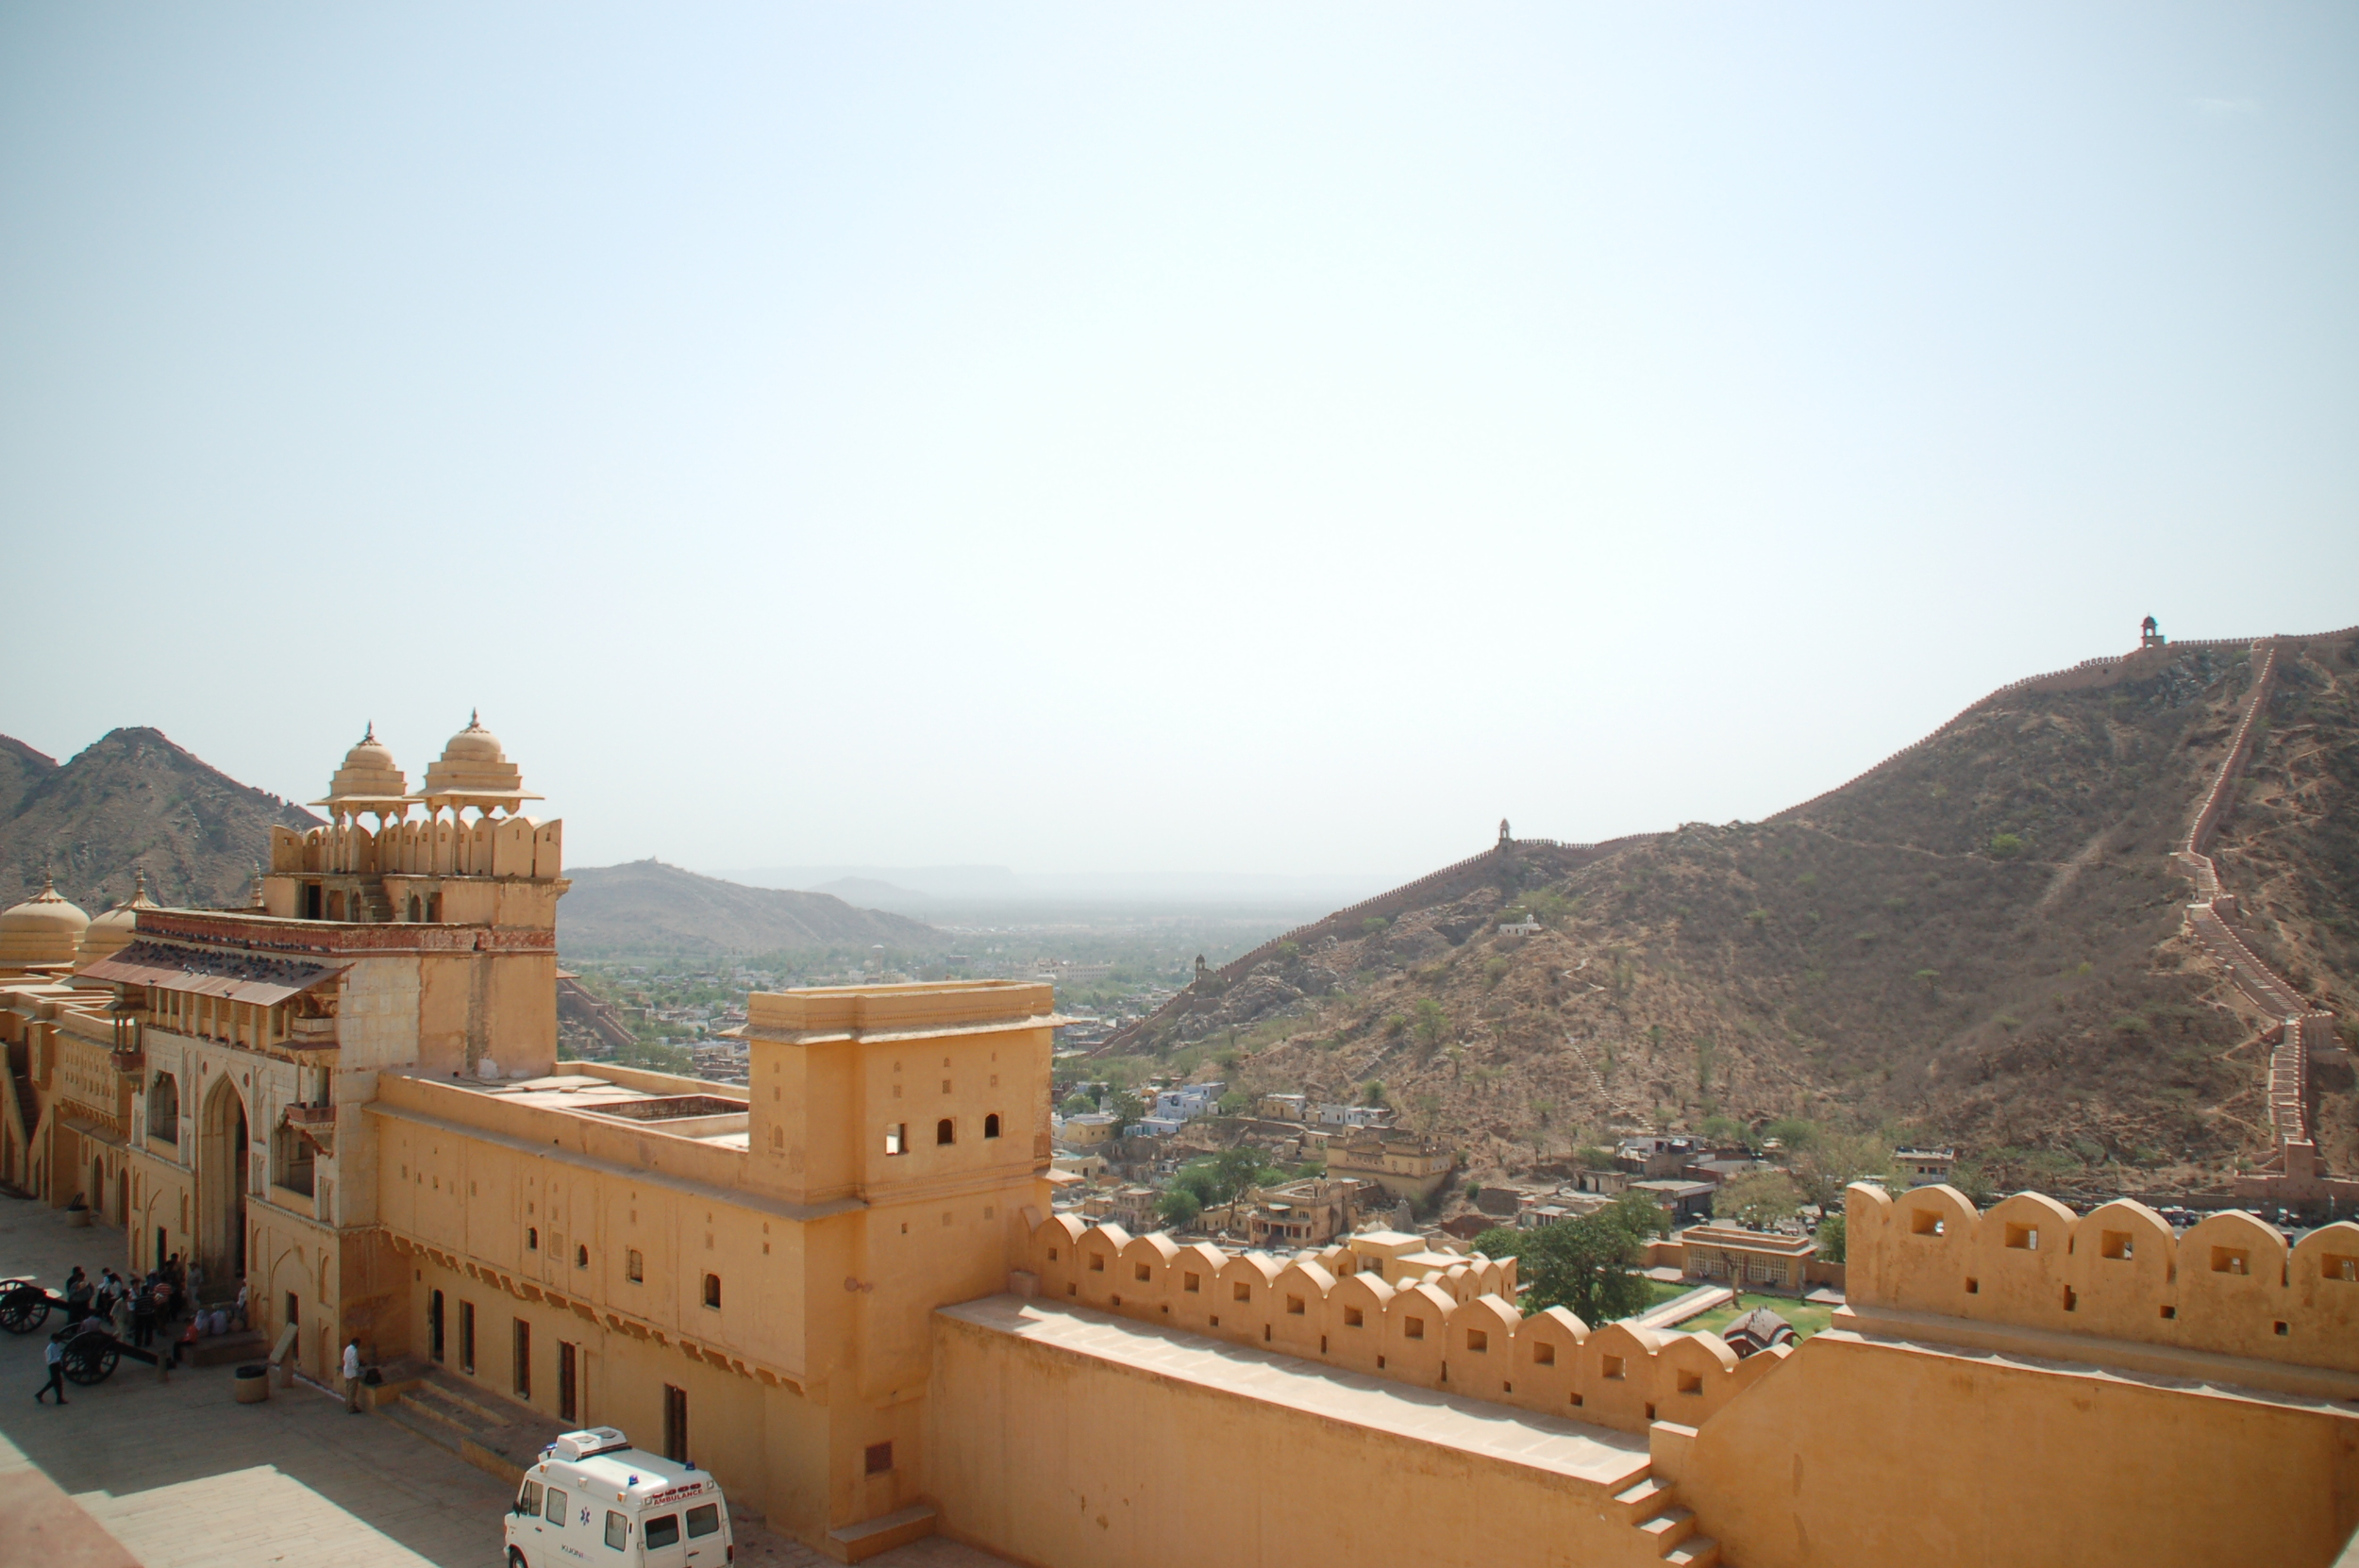 A Gorgeous View from Amber Fort